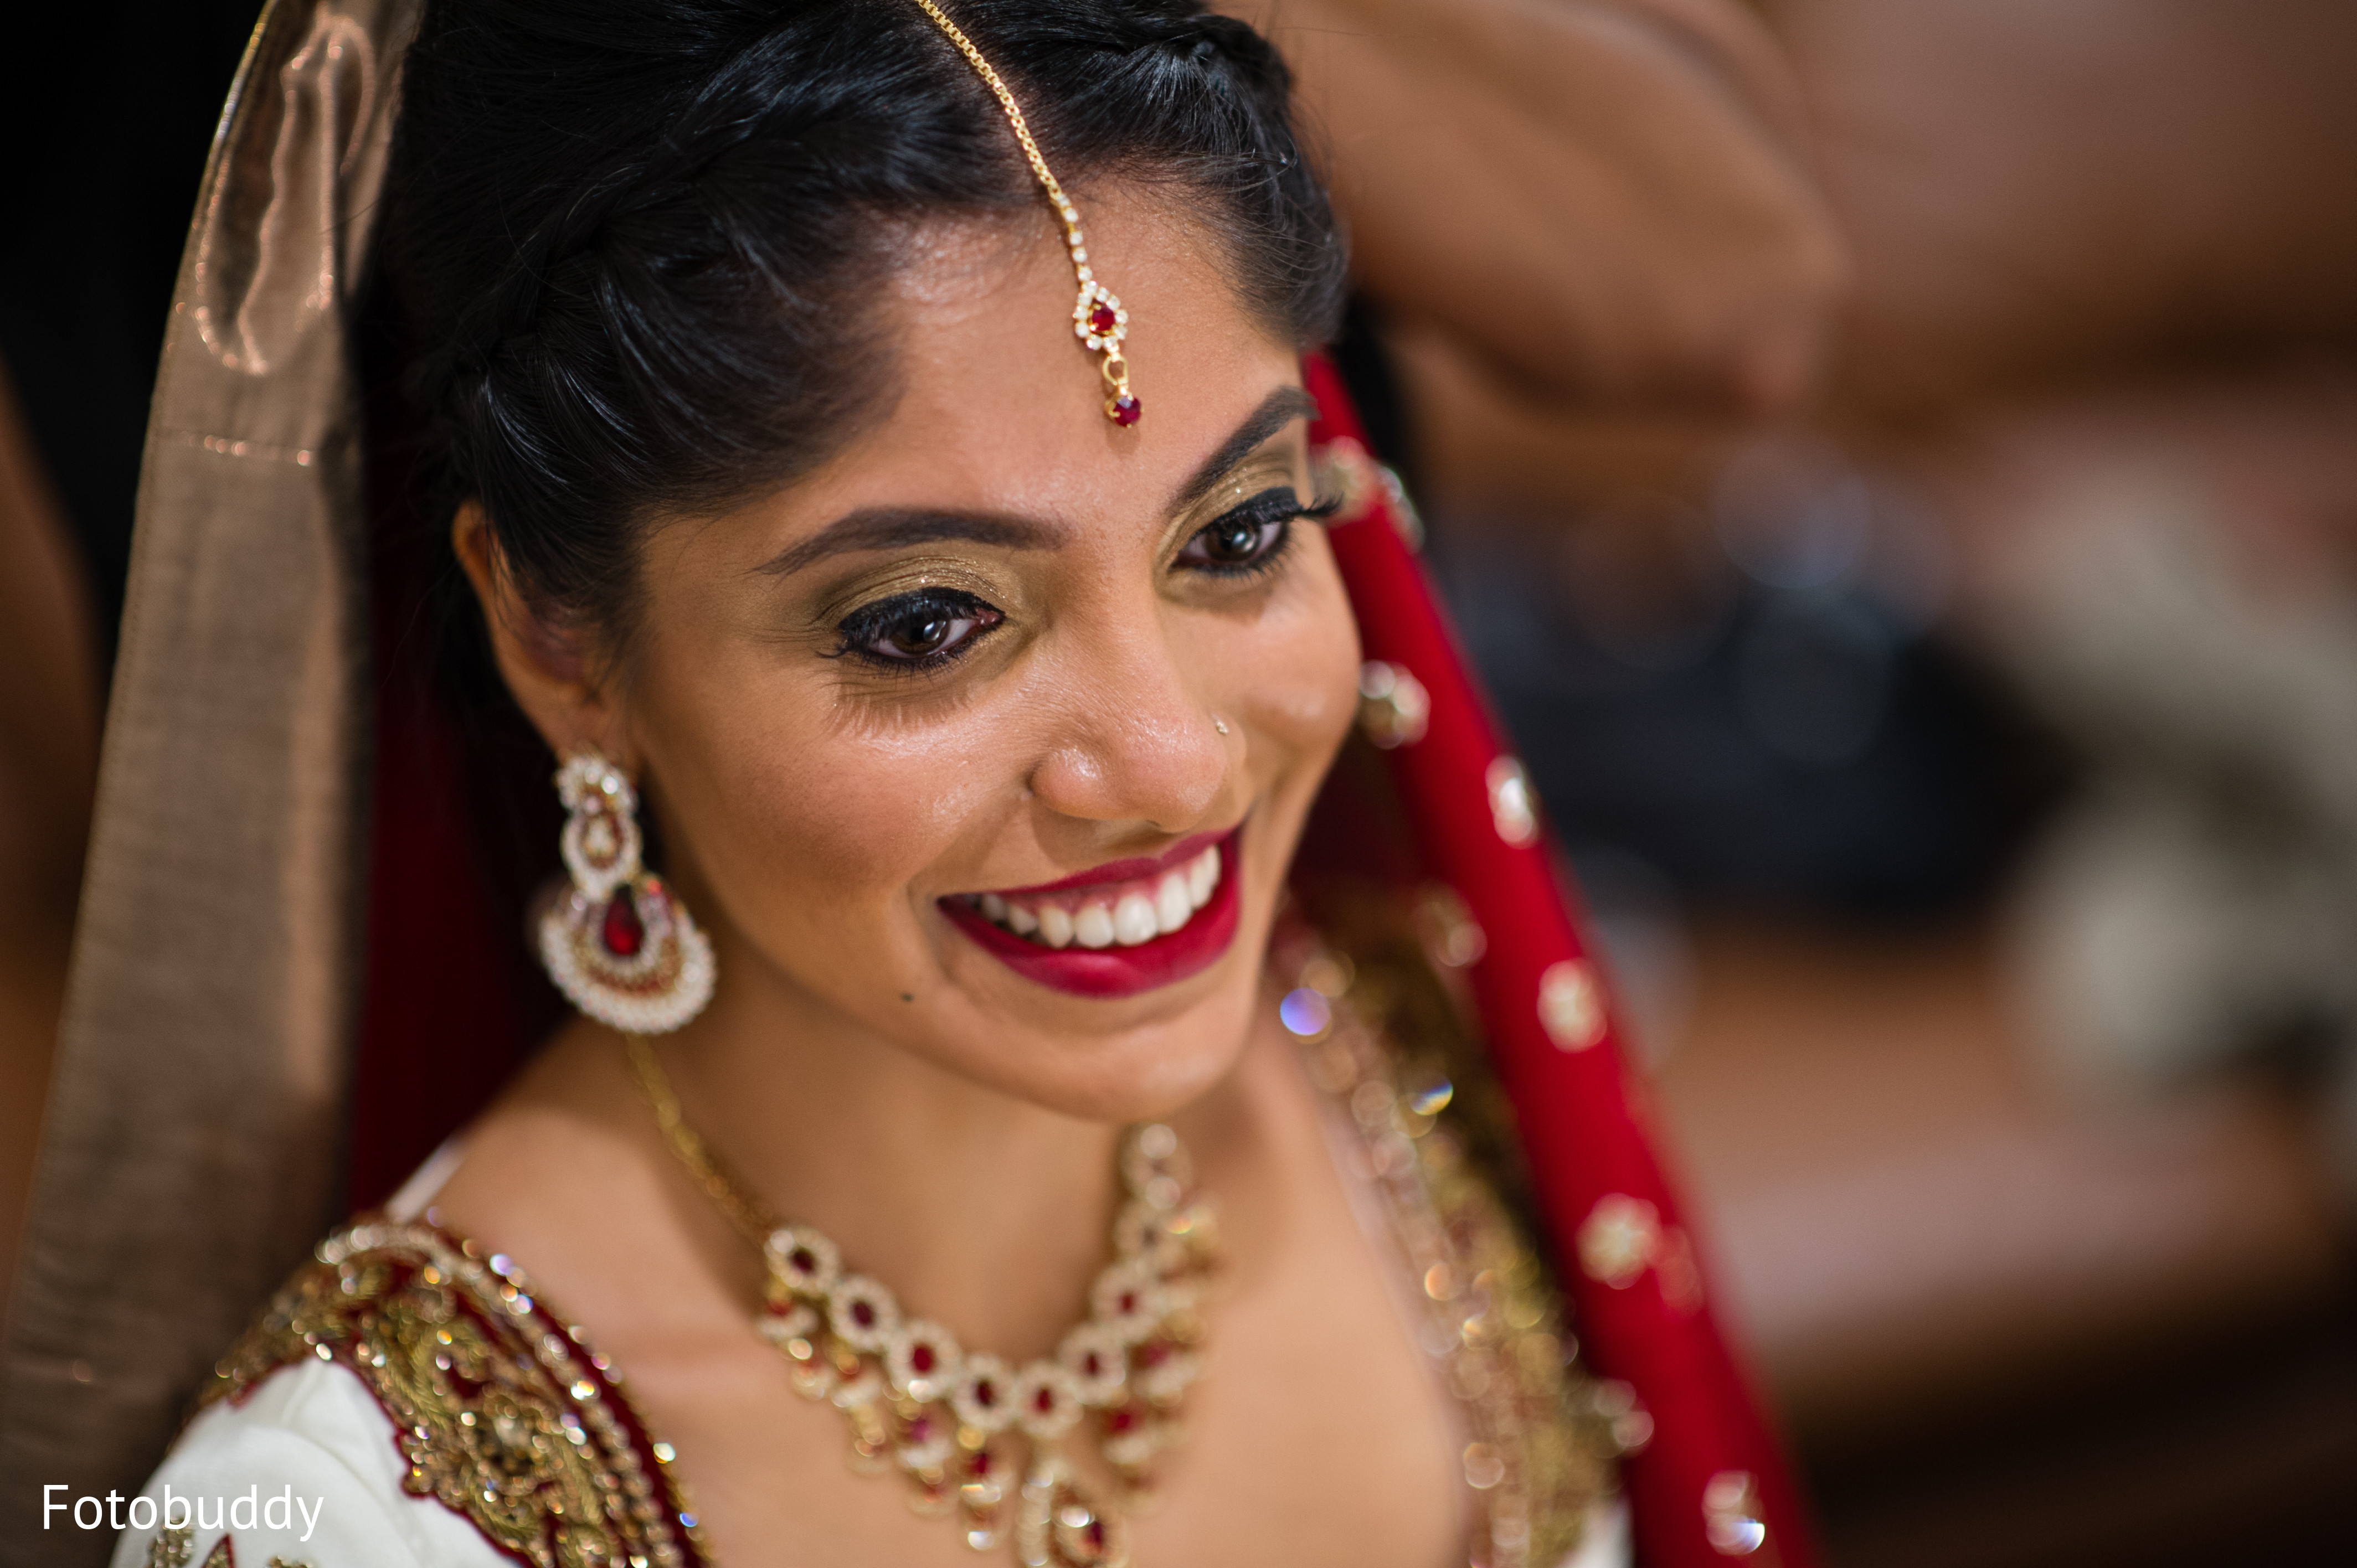 monmouth junction, nj south asian wedding by fotobuddy